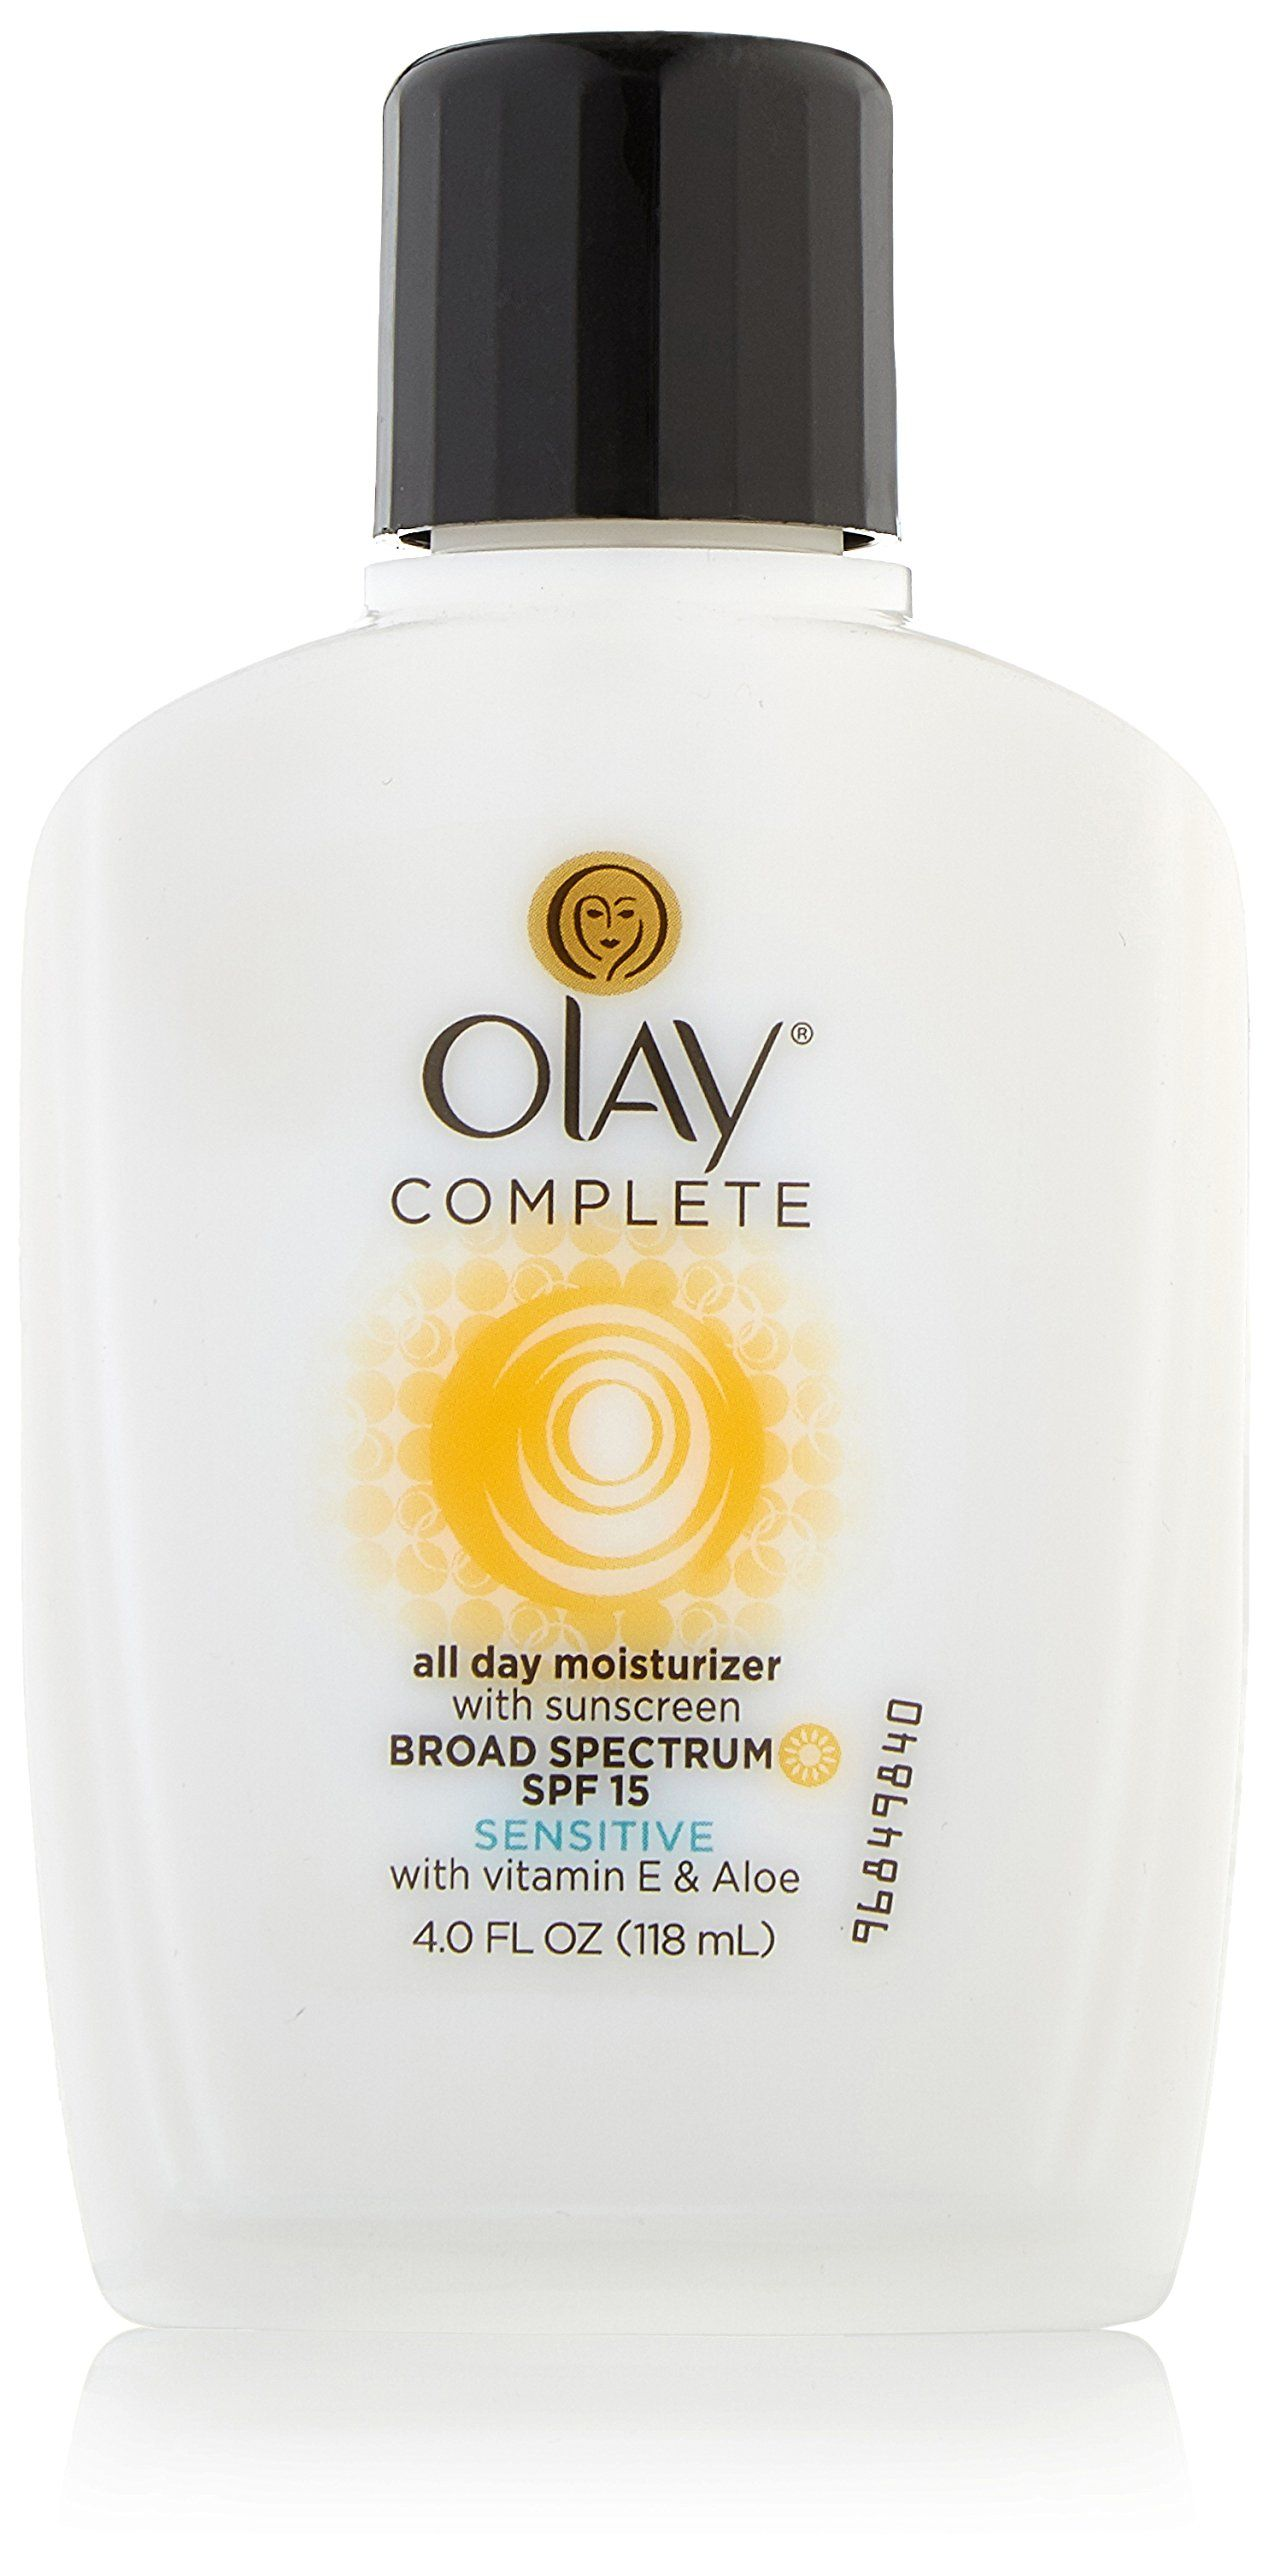 6f58bb972 Olay Complete All Day Moisturizer With Sunscreen Broad Spectrum SPF 15 -  Sensitive, 4 fl